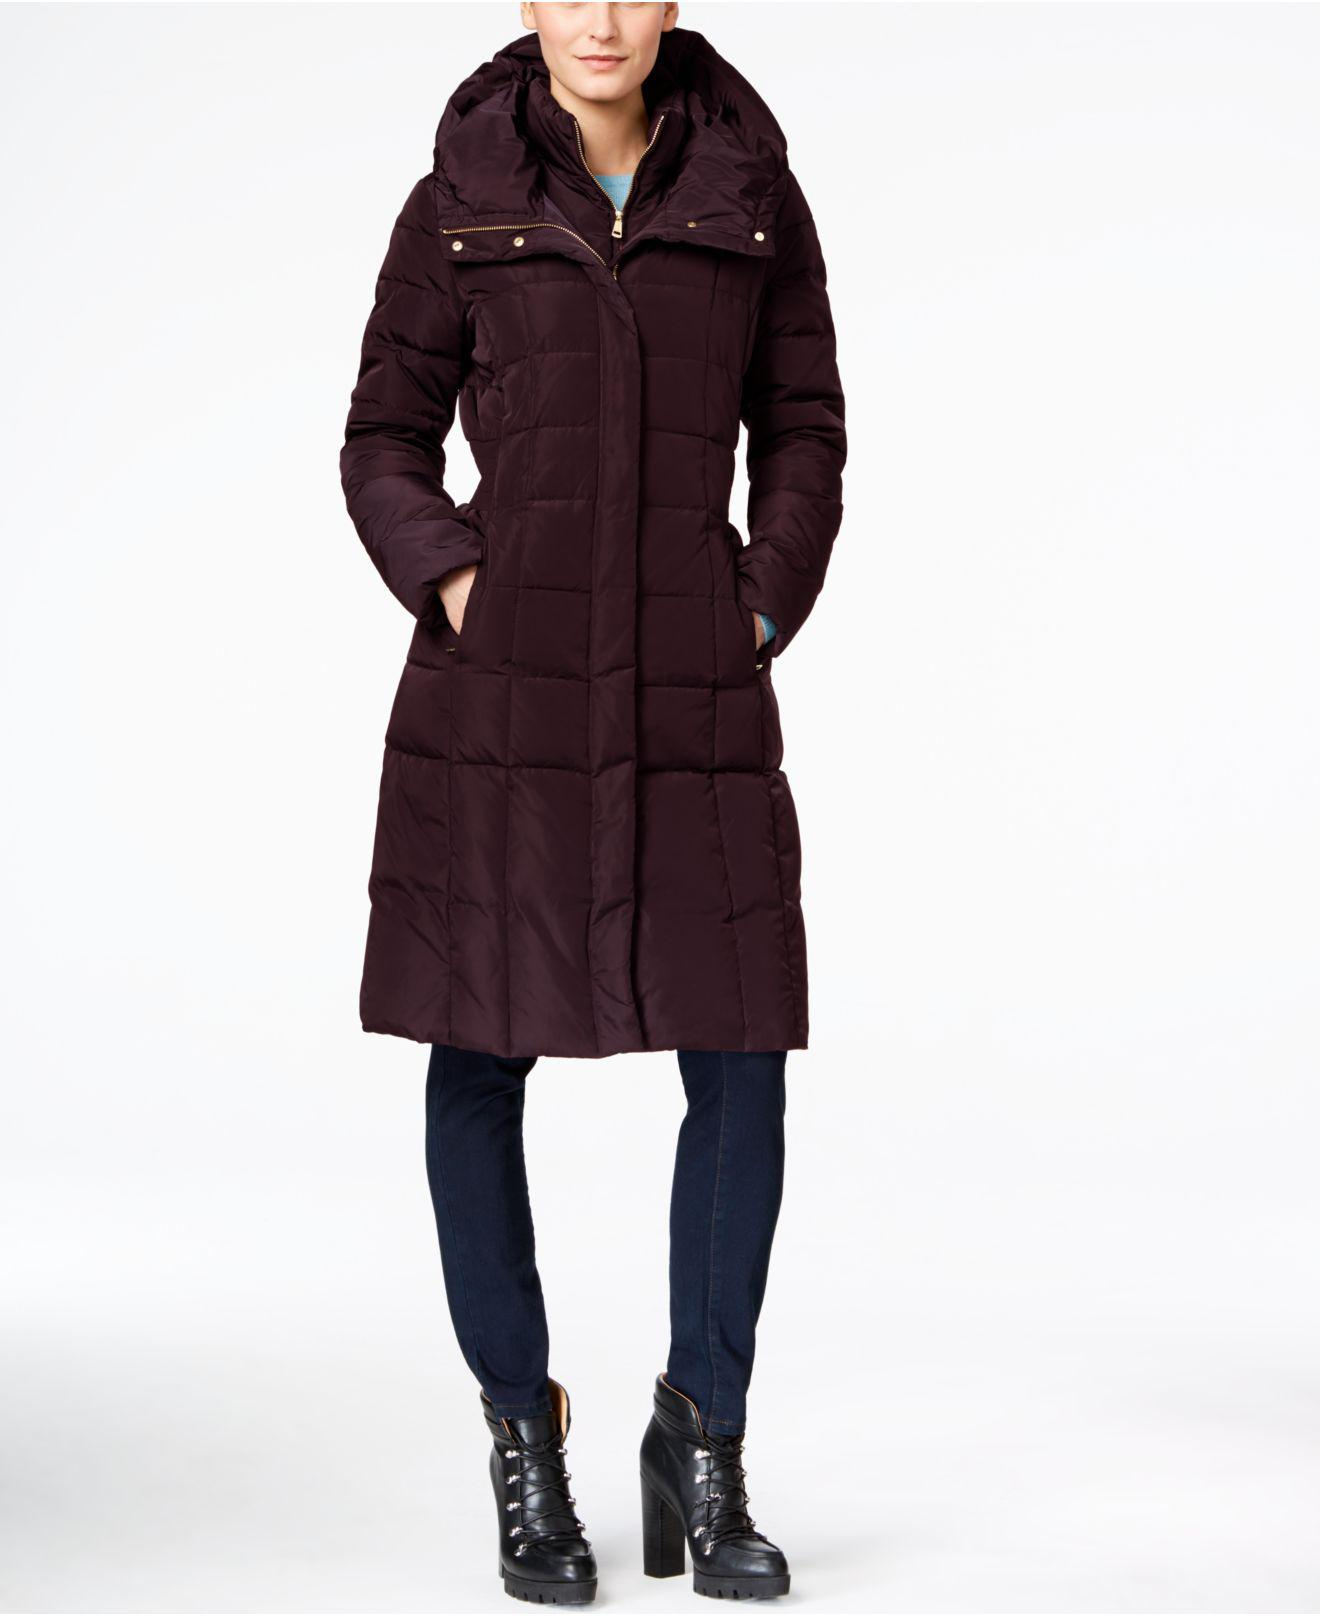 c9e9bf1c802 Lyst - Cole Haan Layered Maxi Puffer Coat in Purple - Save 9%